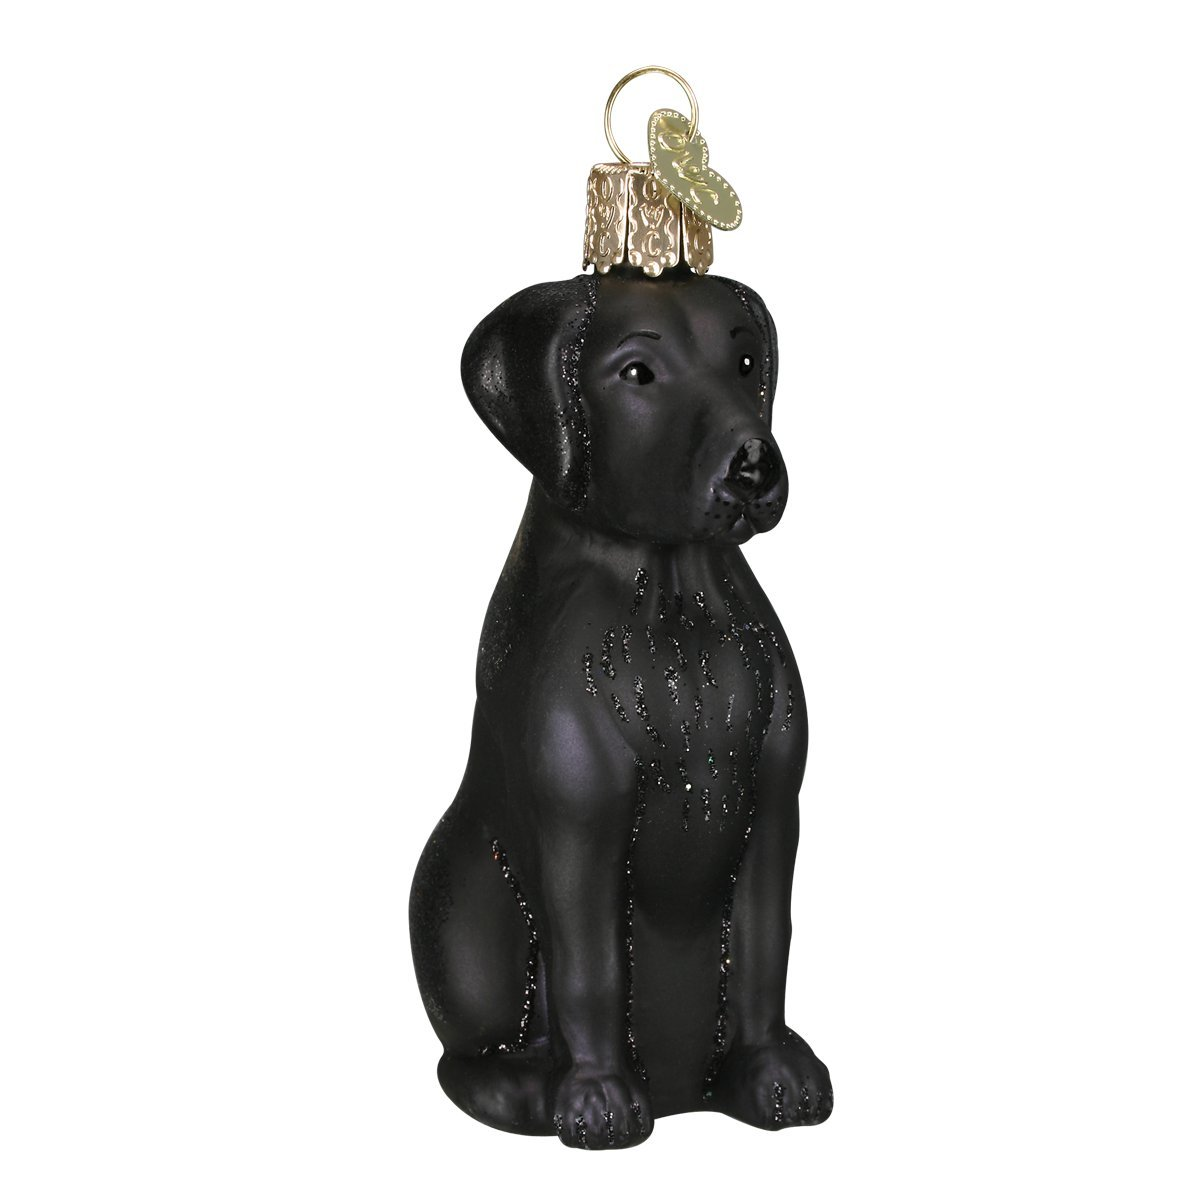 Old World Christmas Ornaments: Black Labrador Glass Blown Ornaments for Christmas Tree